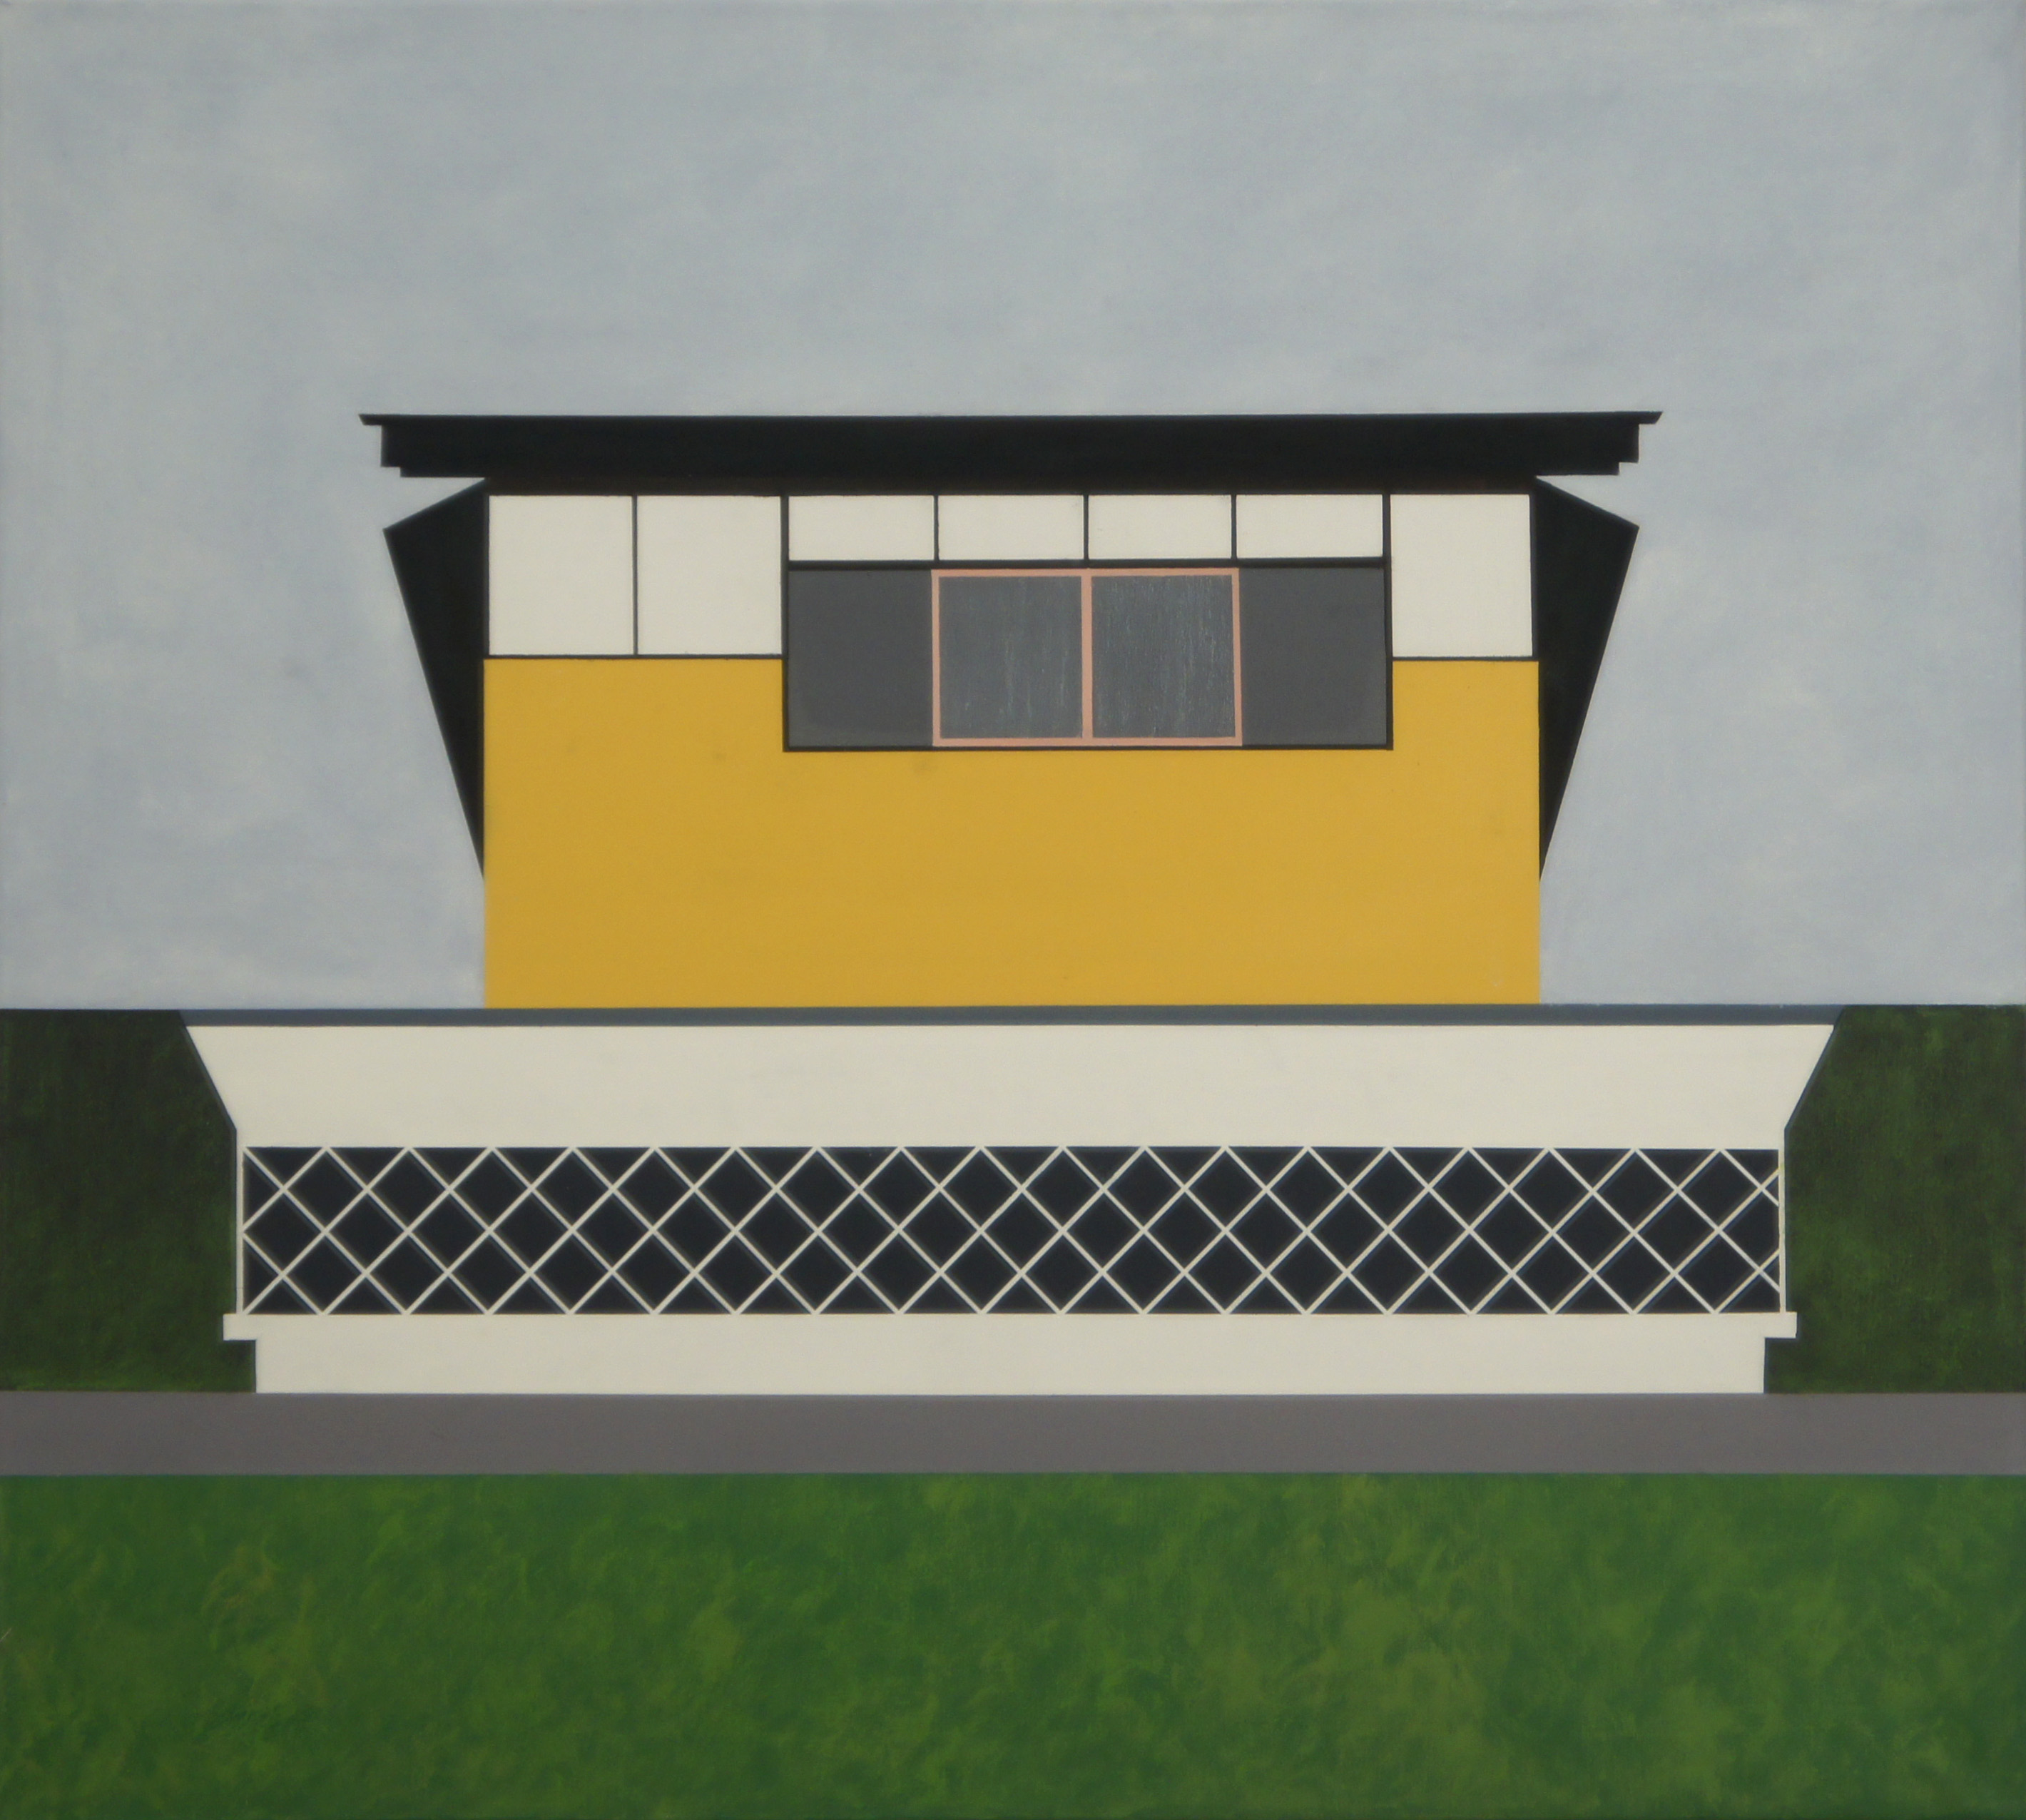 Haus am Hang, Tone/Japan, 2010, 90 x 100 cm,  Ölfarbe auf Leinwand House on a slope, Tone / Japan, 2010, 90 x 100 cm, Oil on canvas